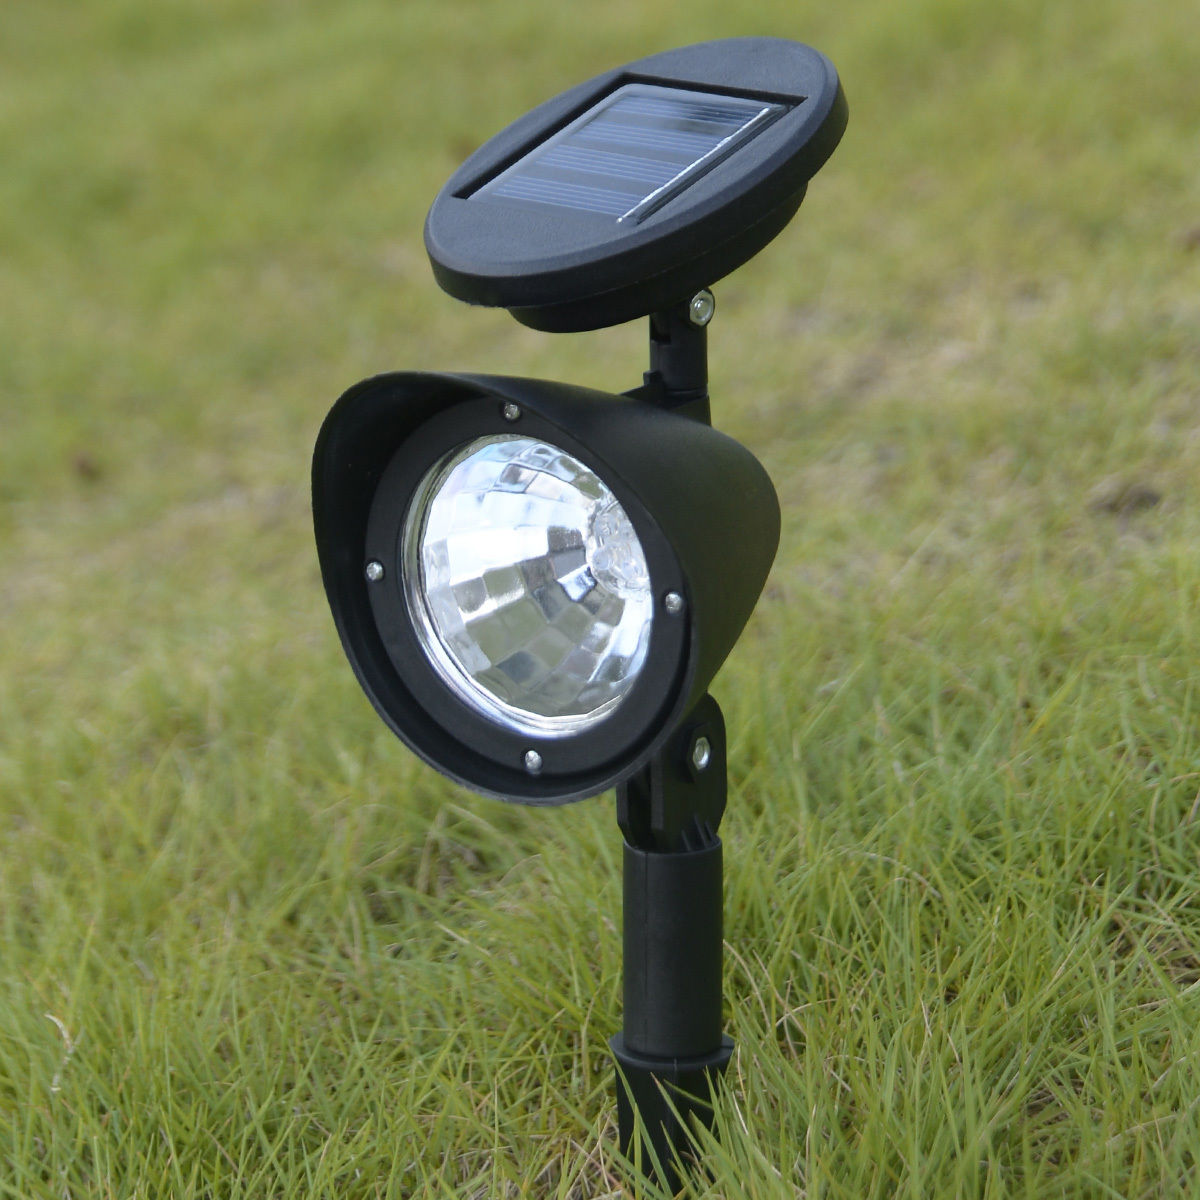 8x led solar spot light outdoor garden lawn spotlight landscape path light lamp. Black Bedroom Furniture Sets. Home Design Ideas